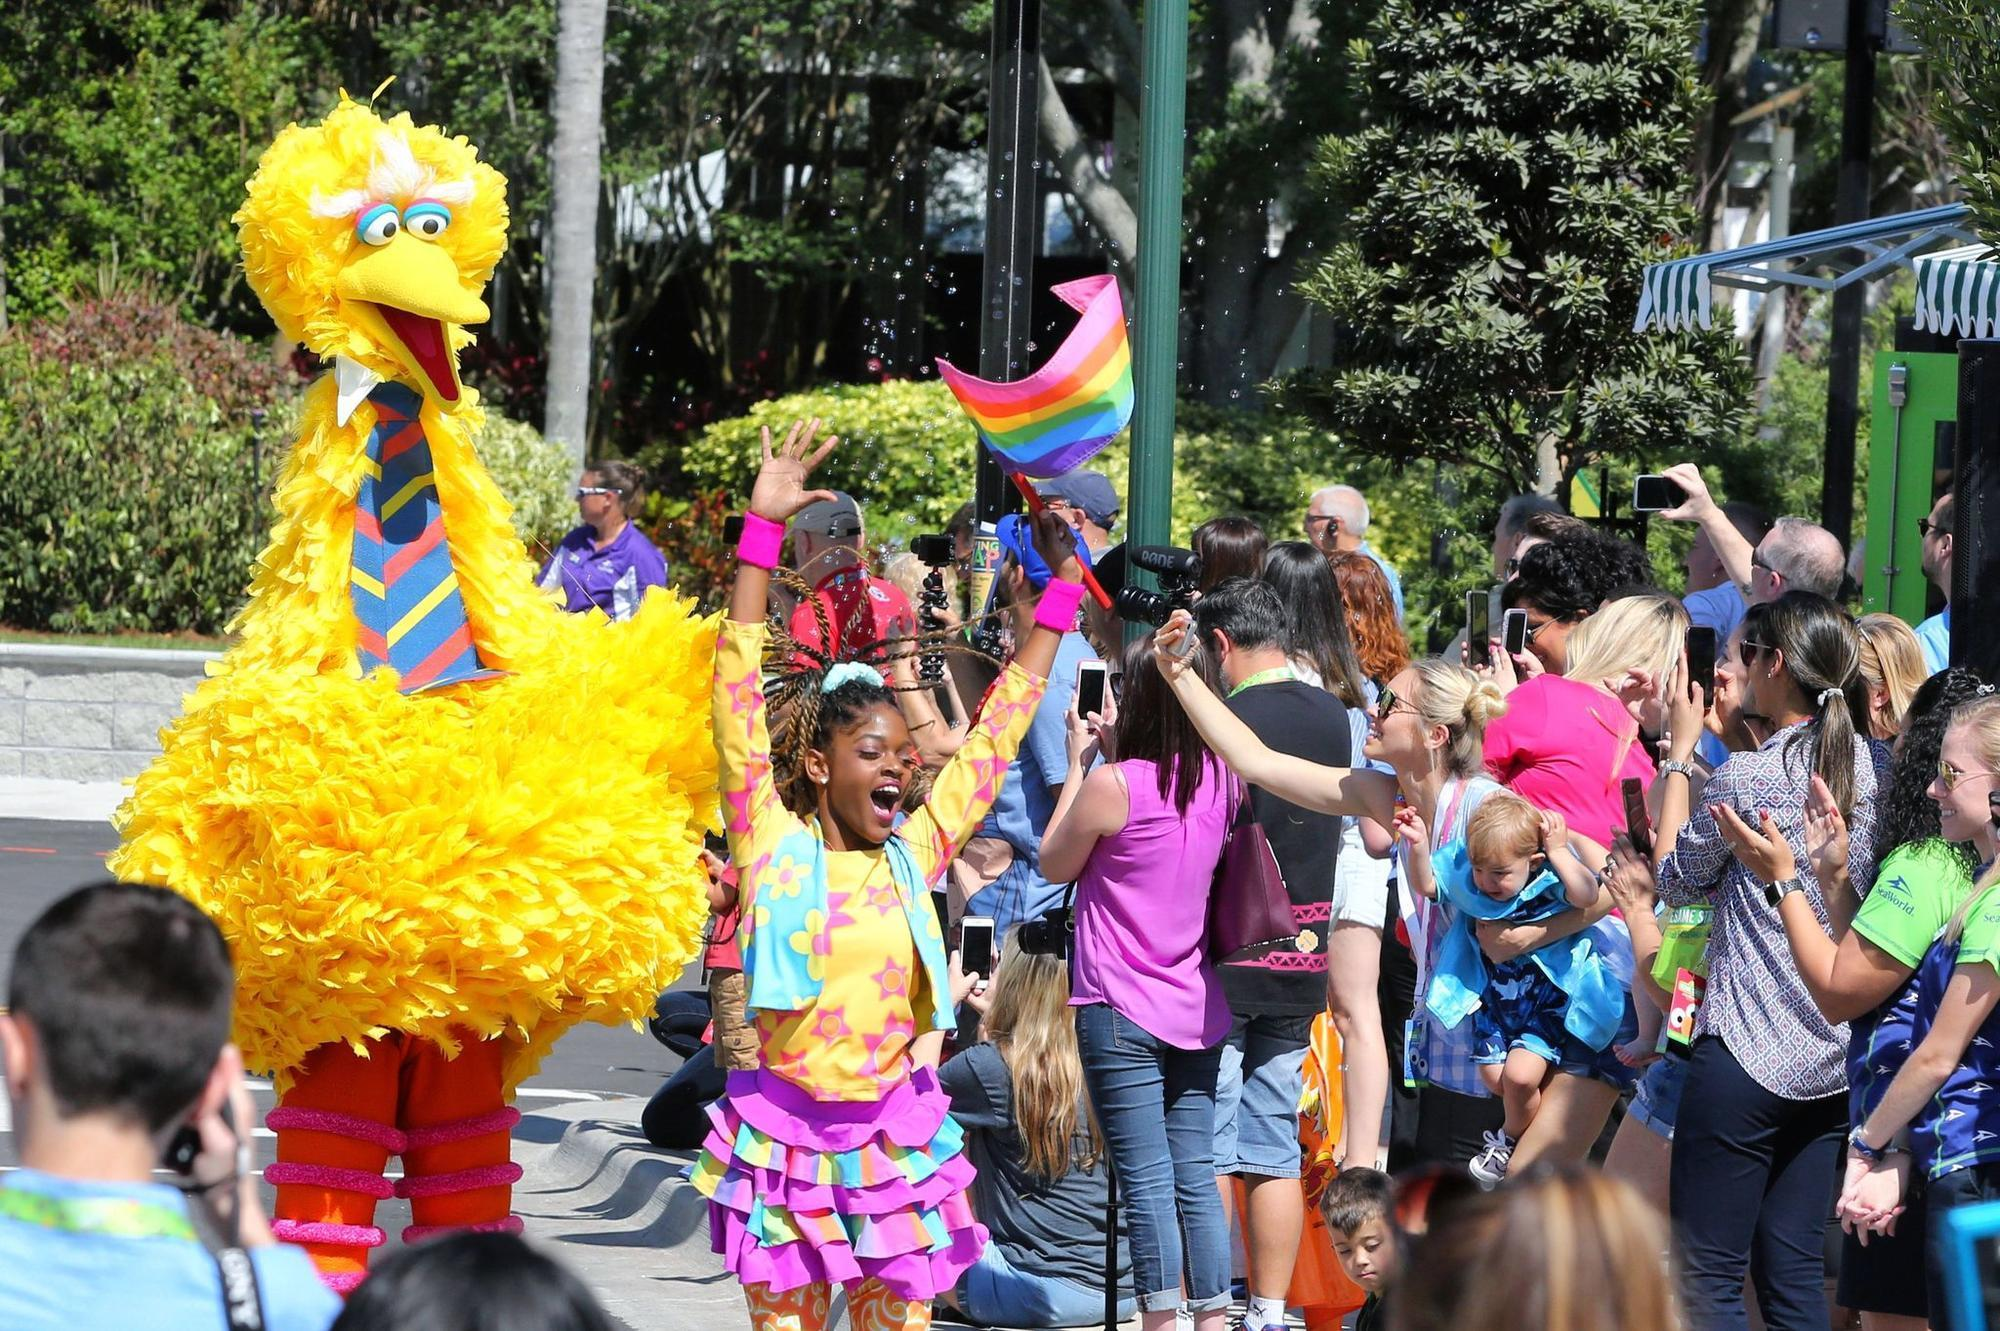 Sesame Street comes alive at SeaWorld Orlando's expansion set to open Wednesday